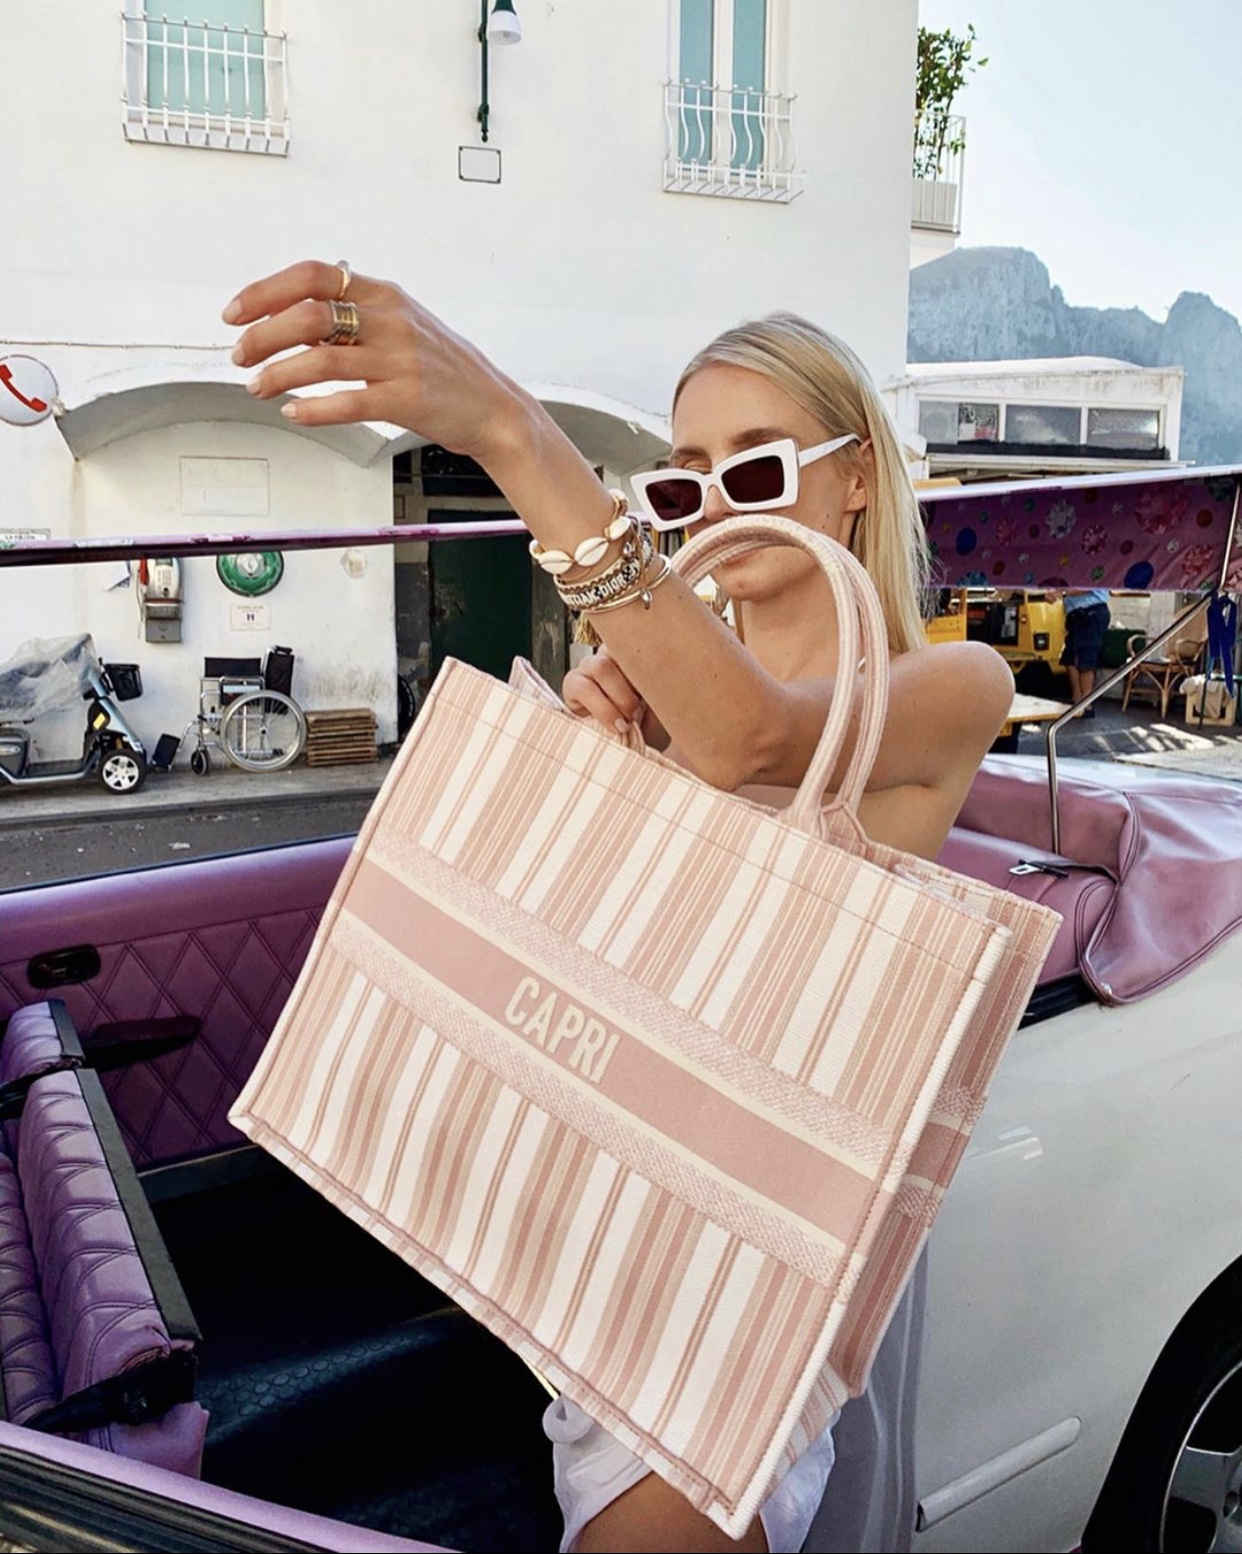 Dior Tote and Vintage Cars in Capri